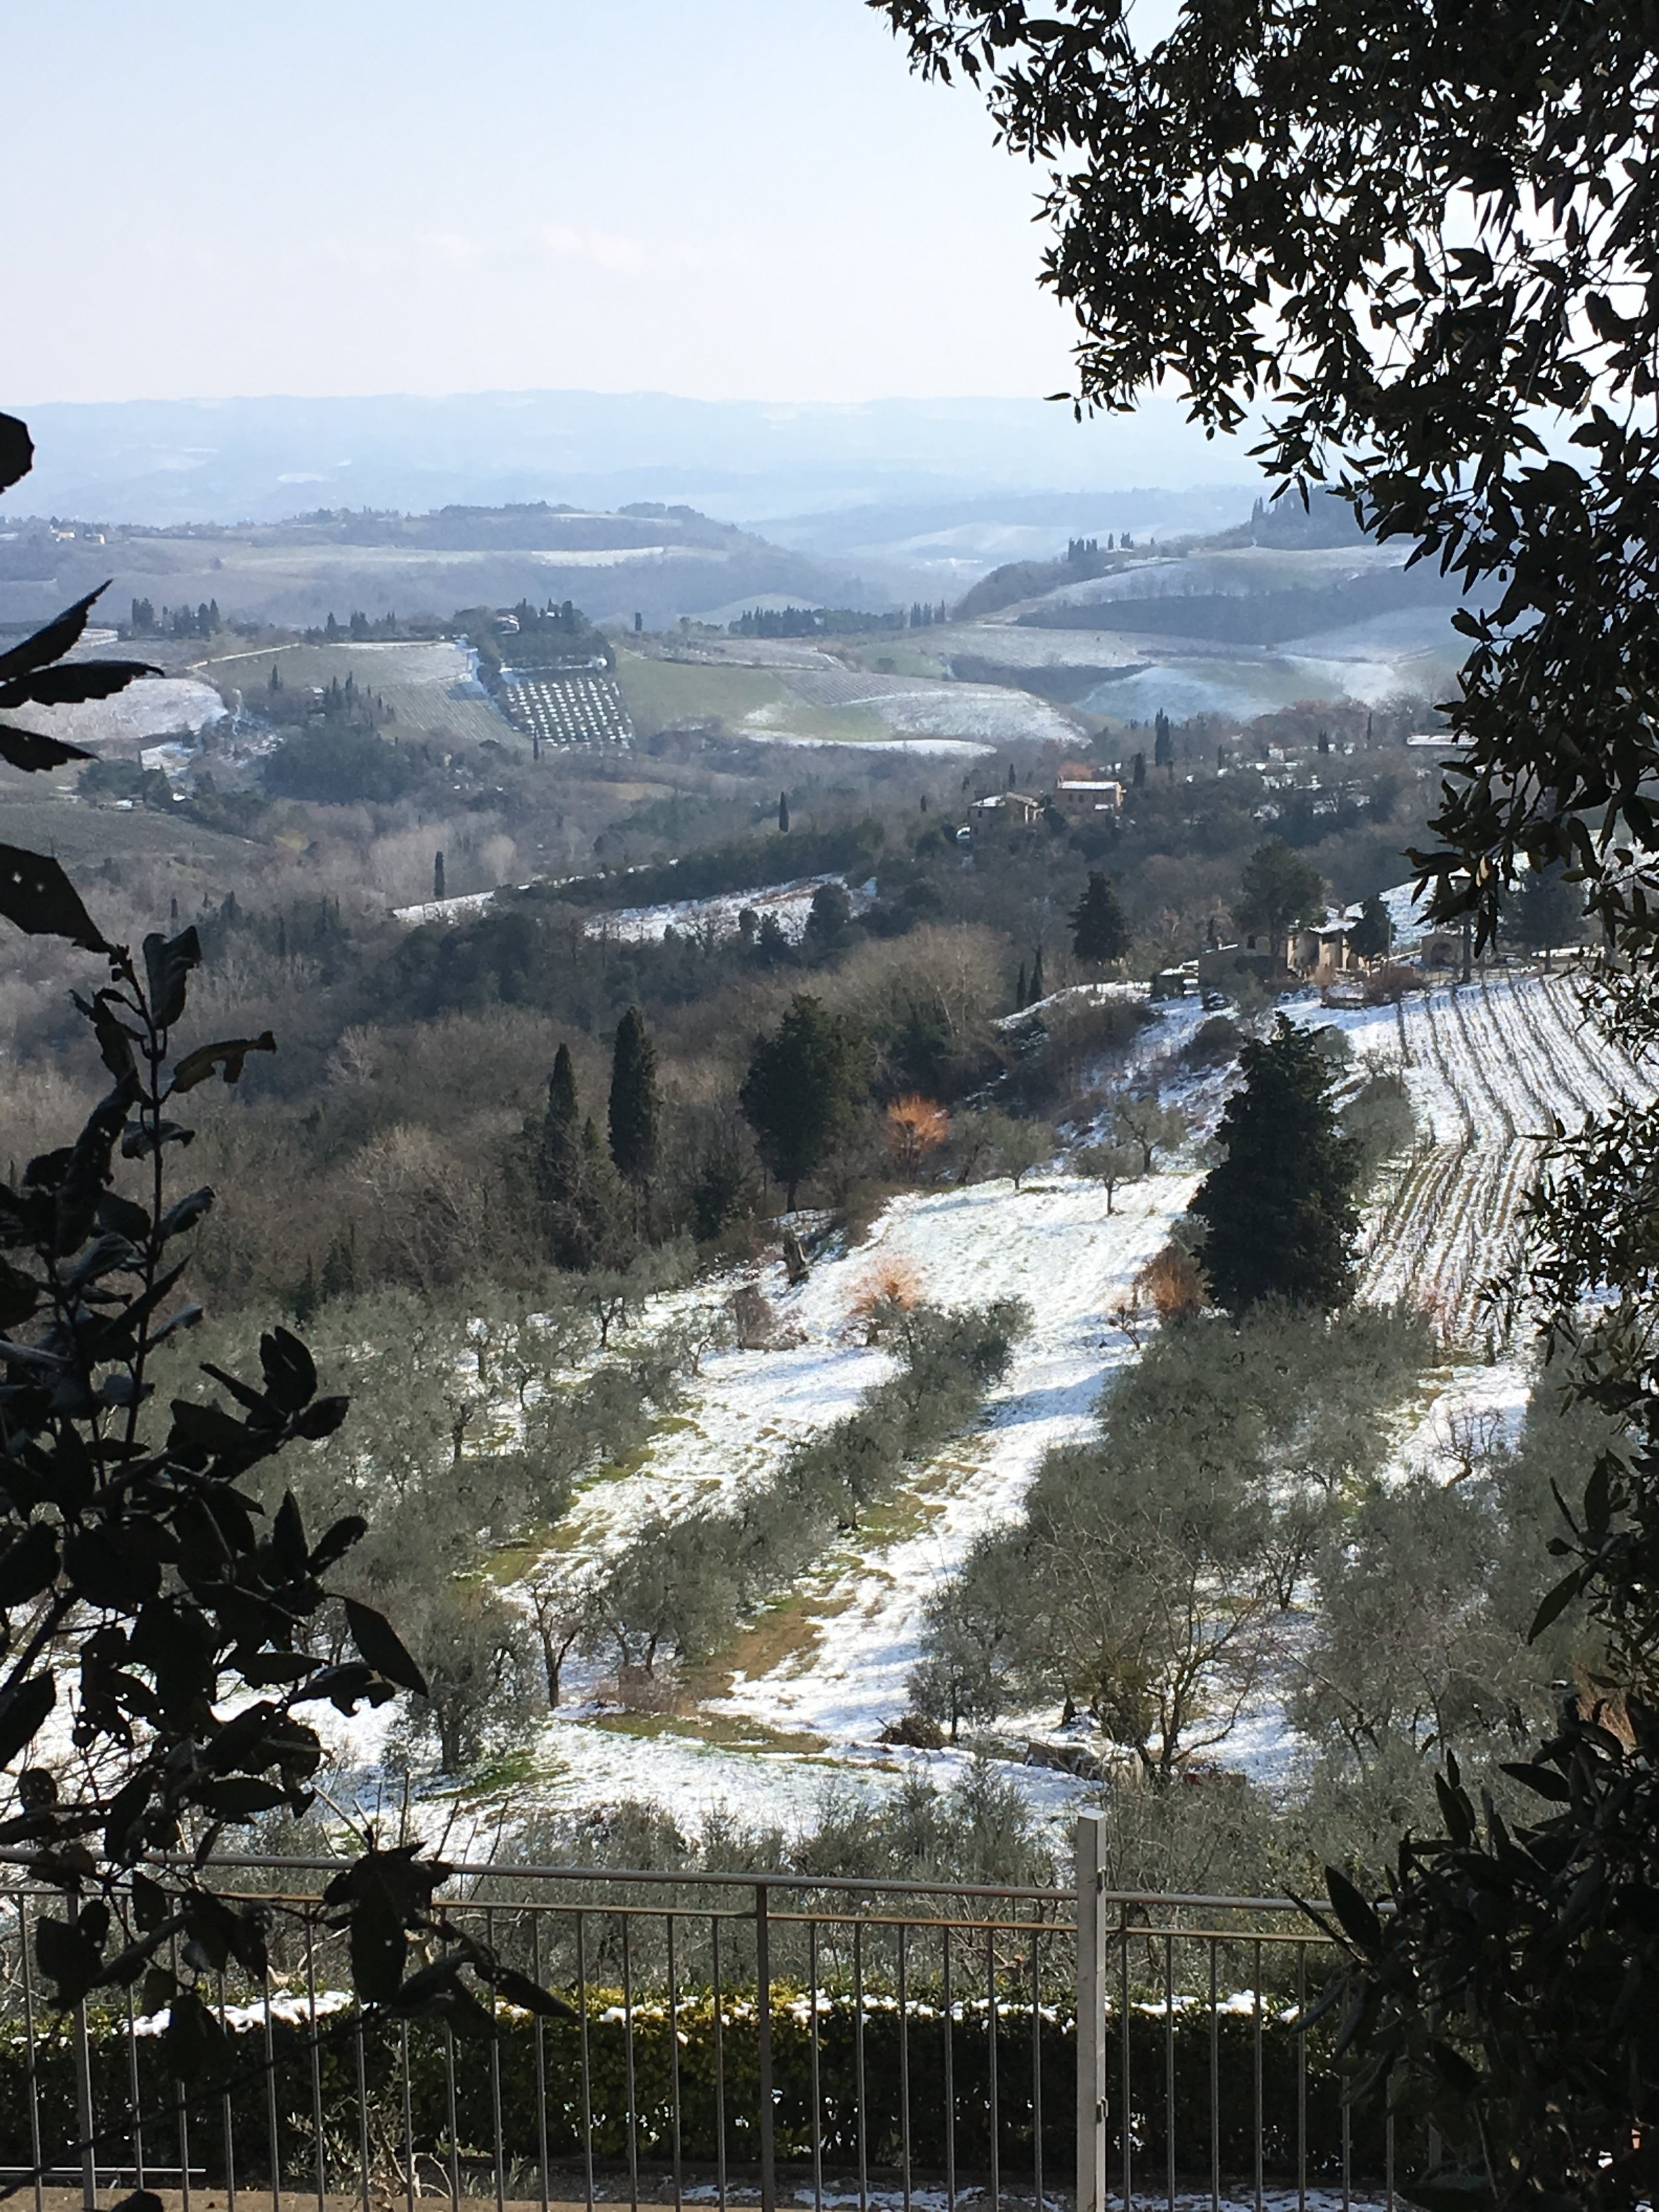 Tuscan hillsides covered in a late winter snow